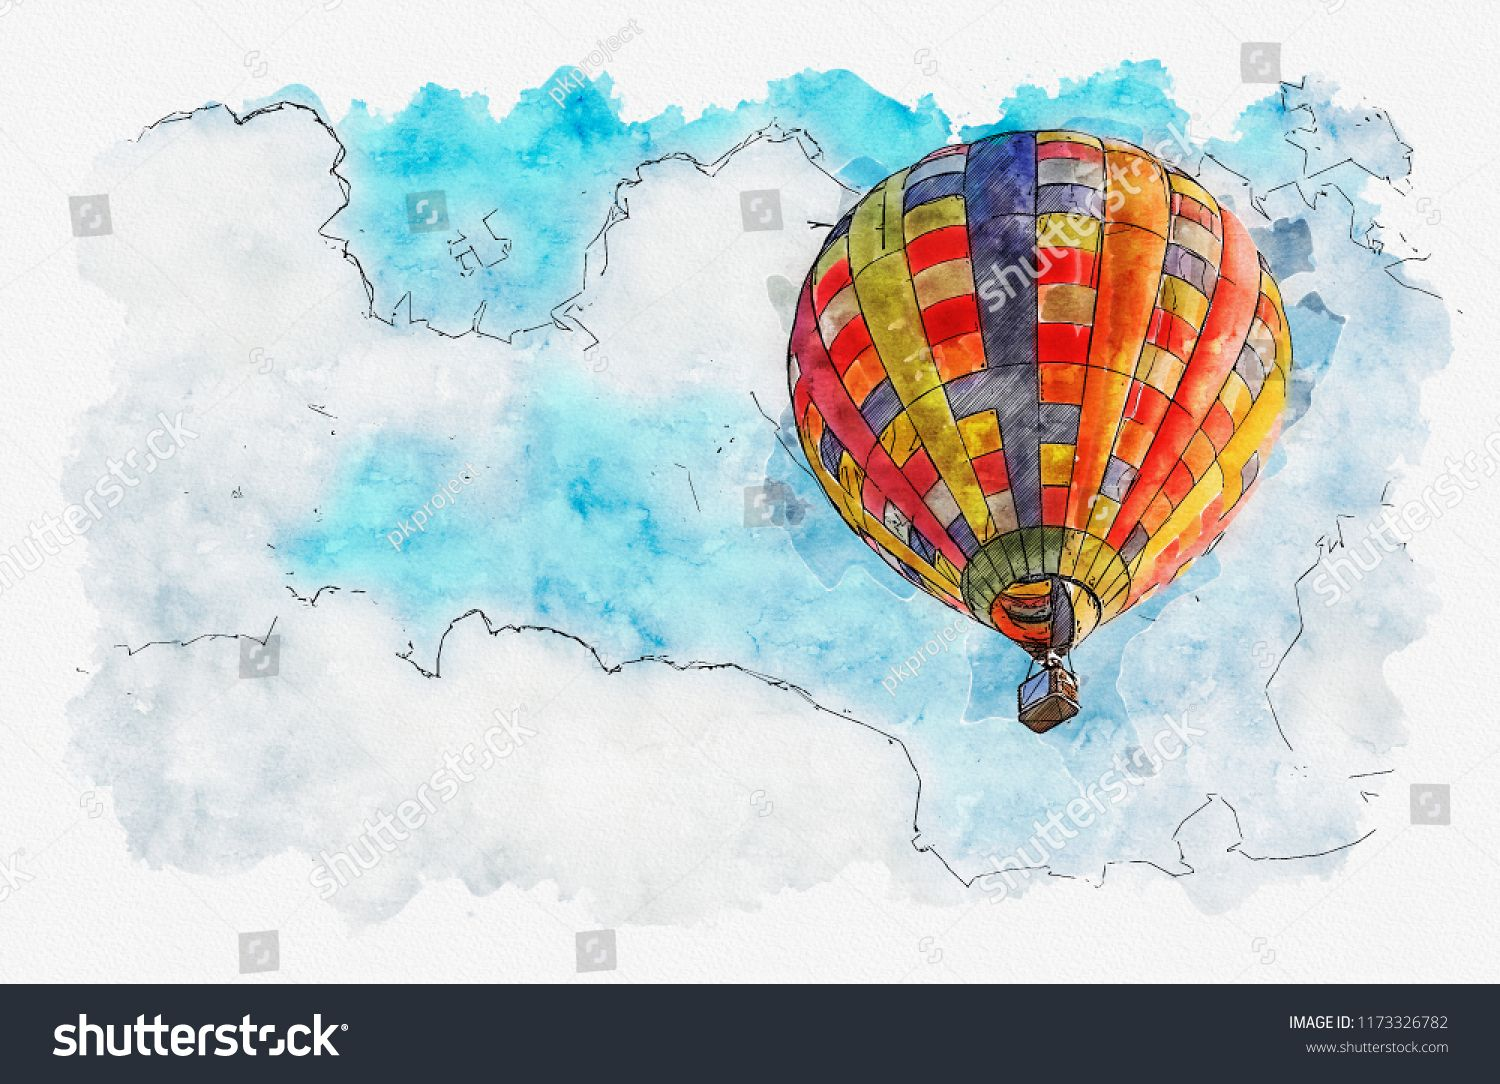 Watercolor Painting Illustration Of Hot Air Balloon In The Sky